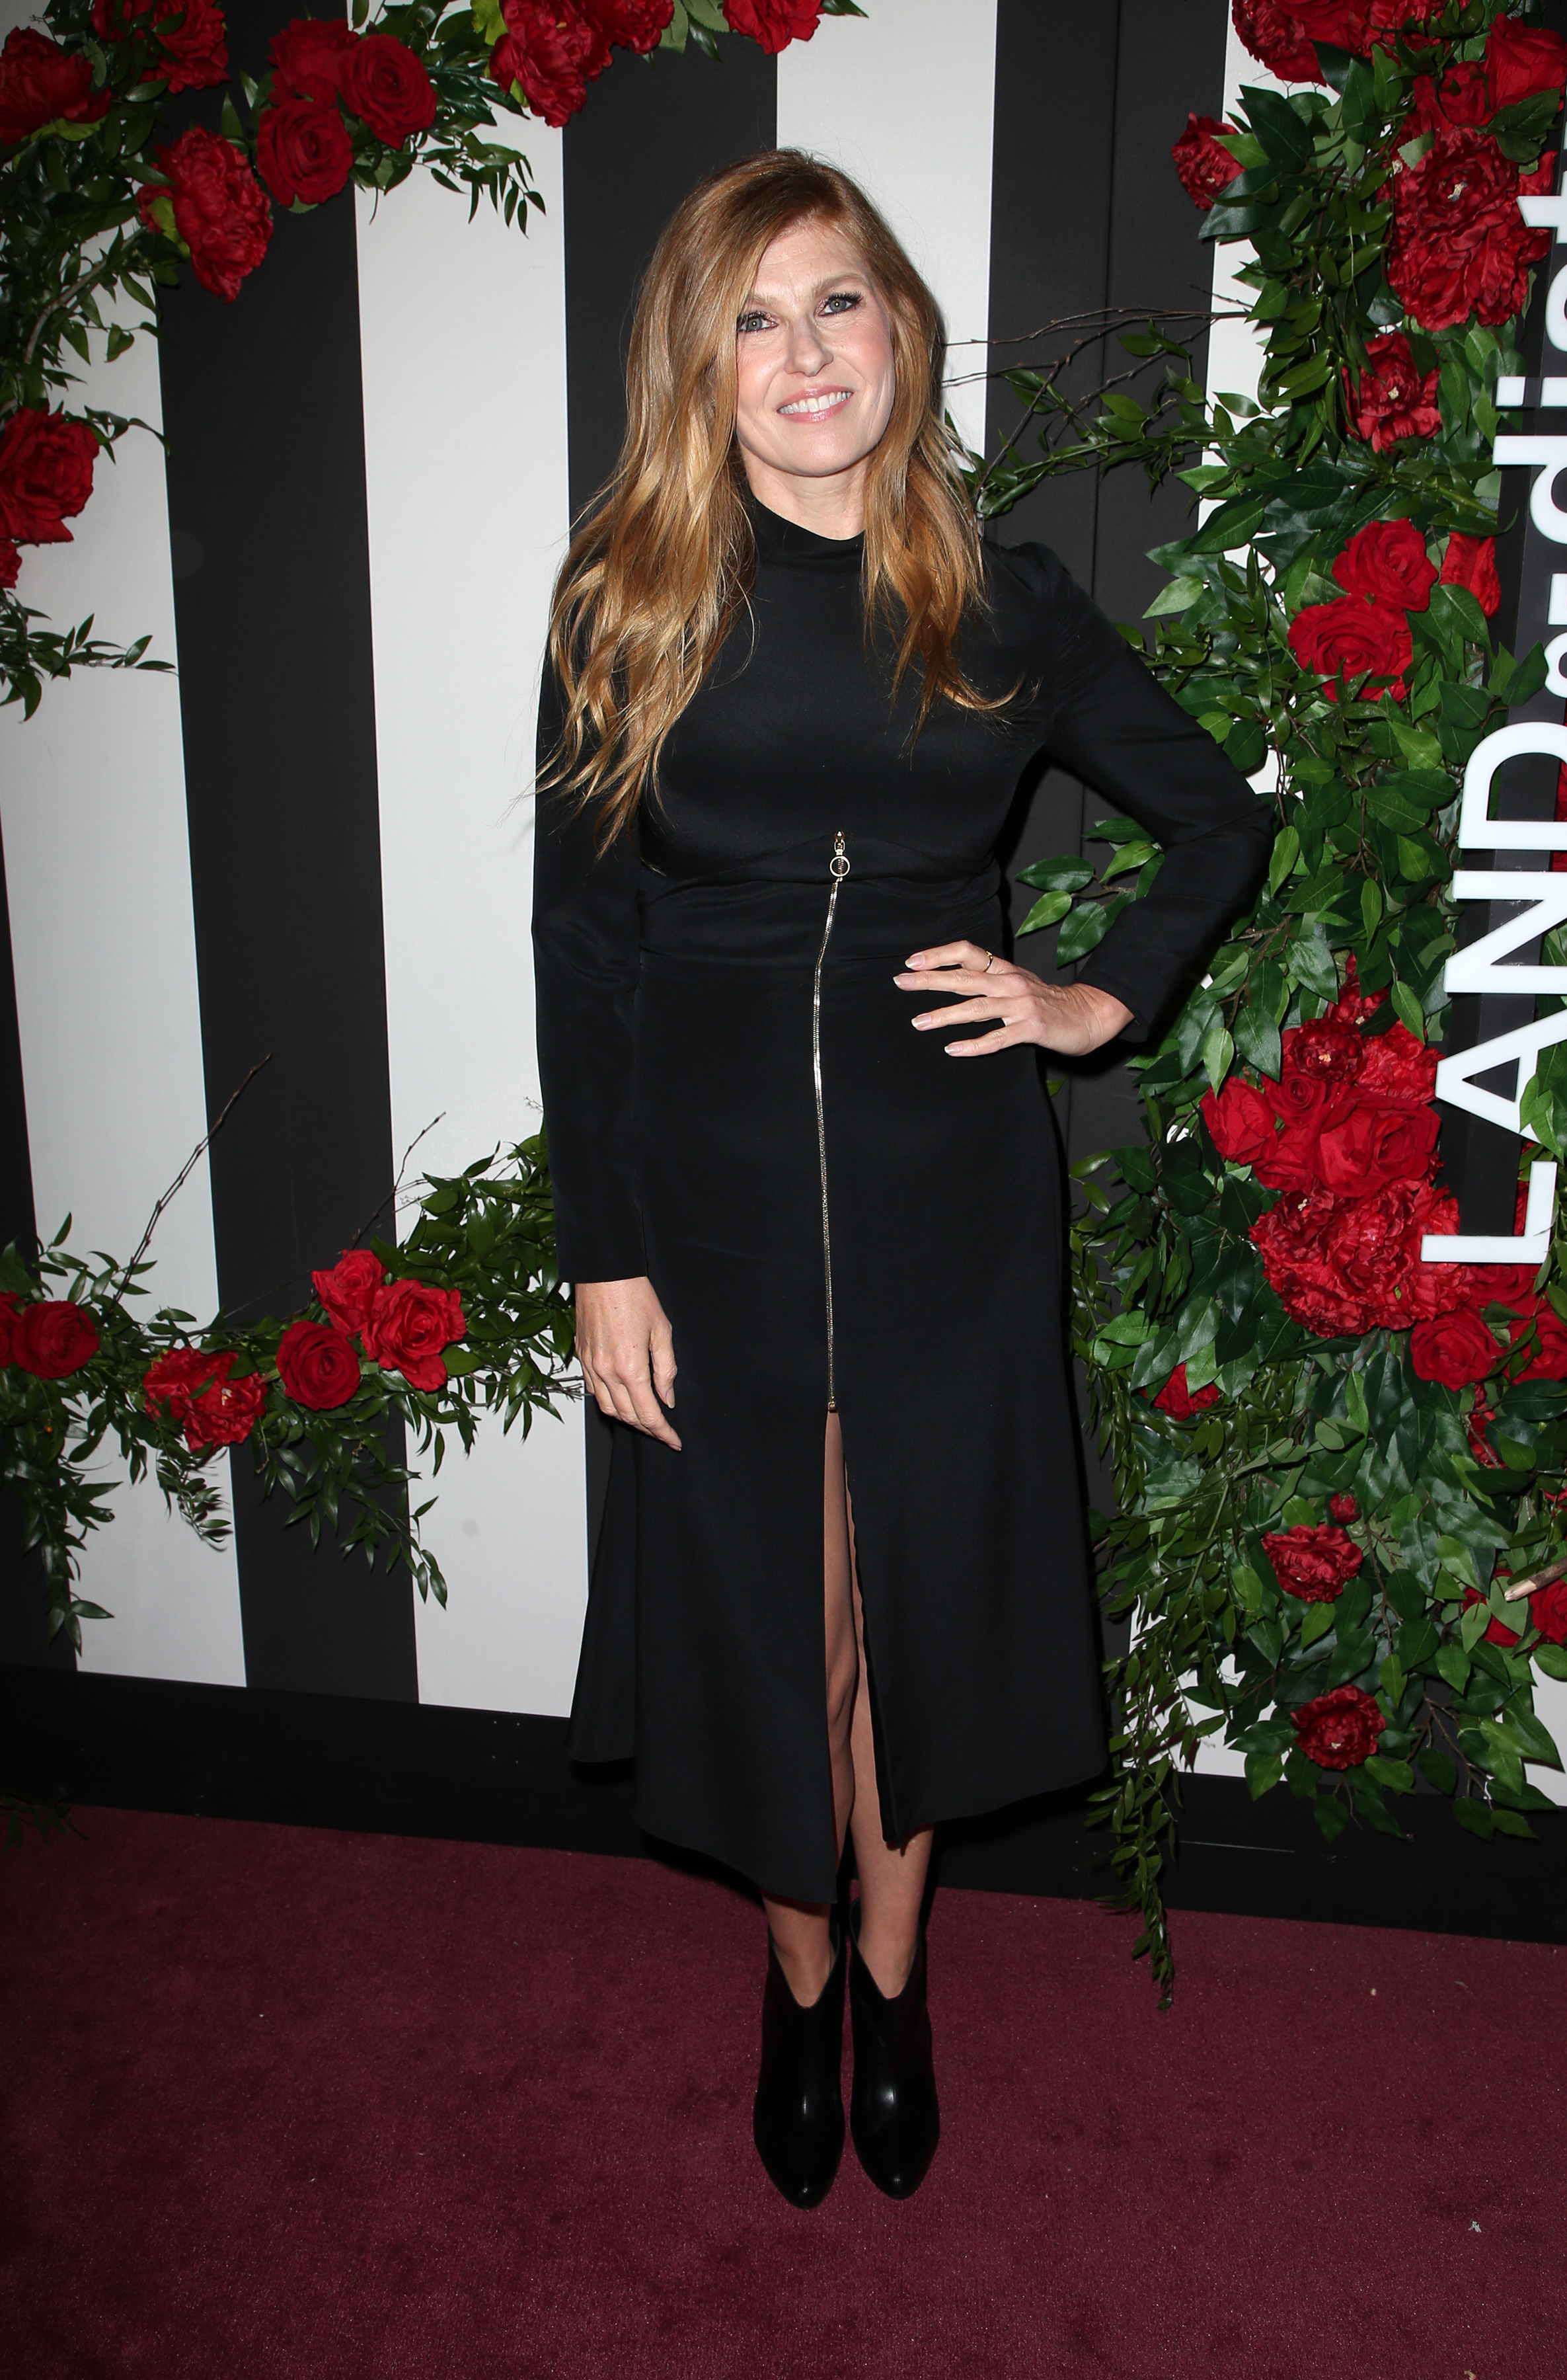 LAND of distraction Launch - Arrivals                                    Featuring: Connie Britton                  Where: West Hollywood, California, United States                  When: 30 Nov 2017                  Credit: FayesVision/WENN.com